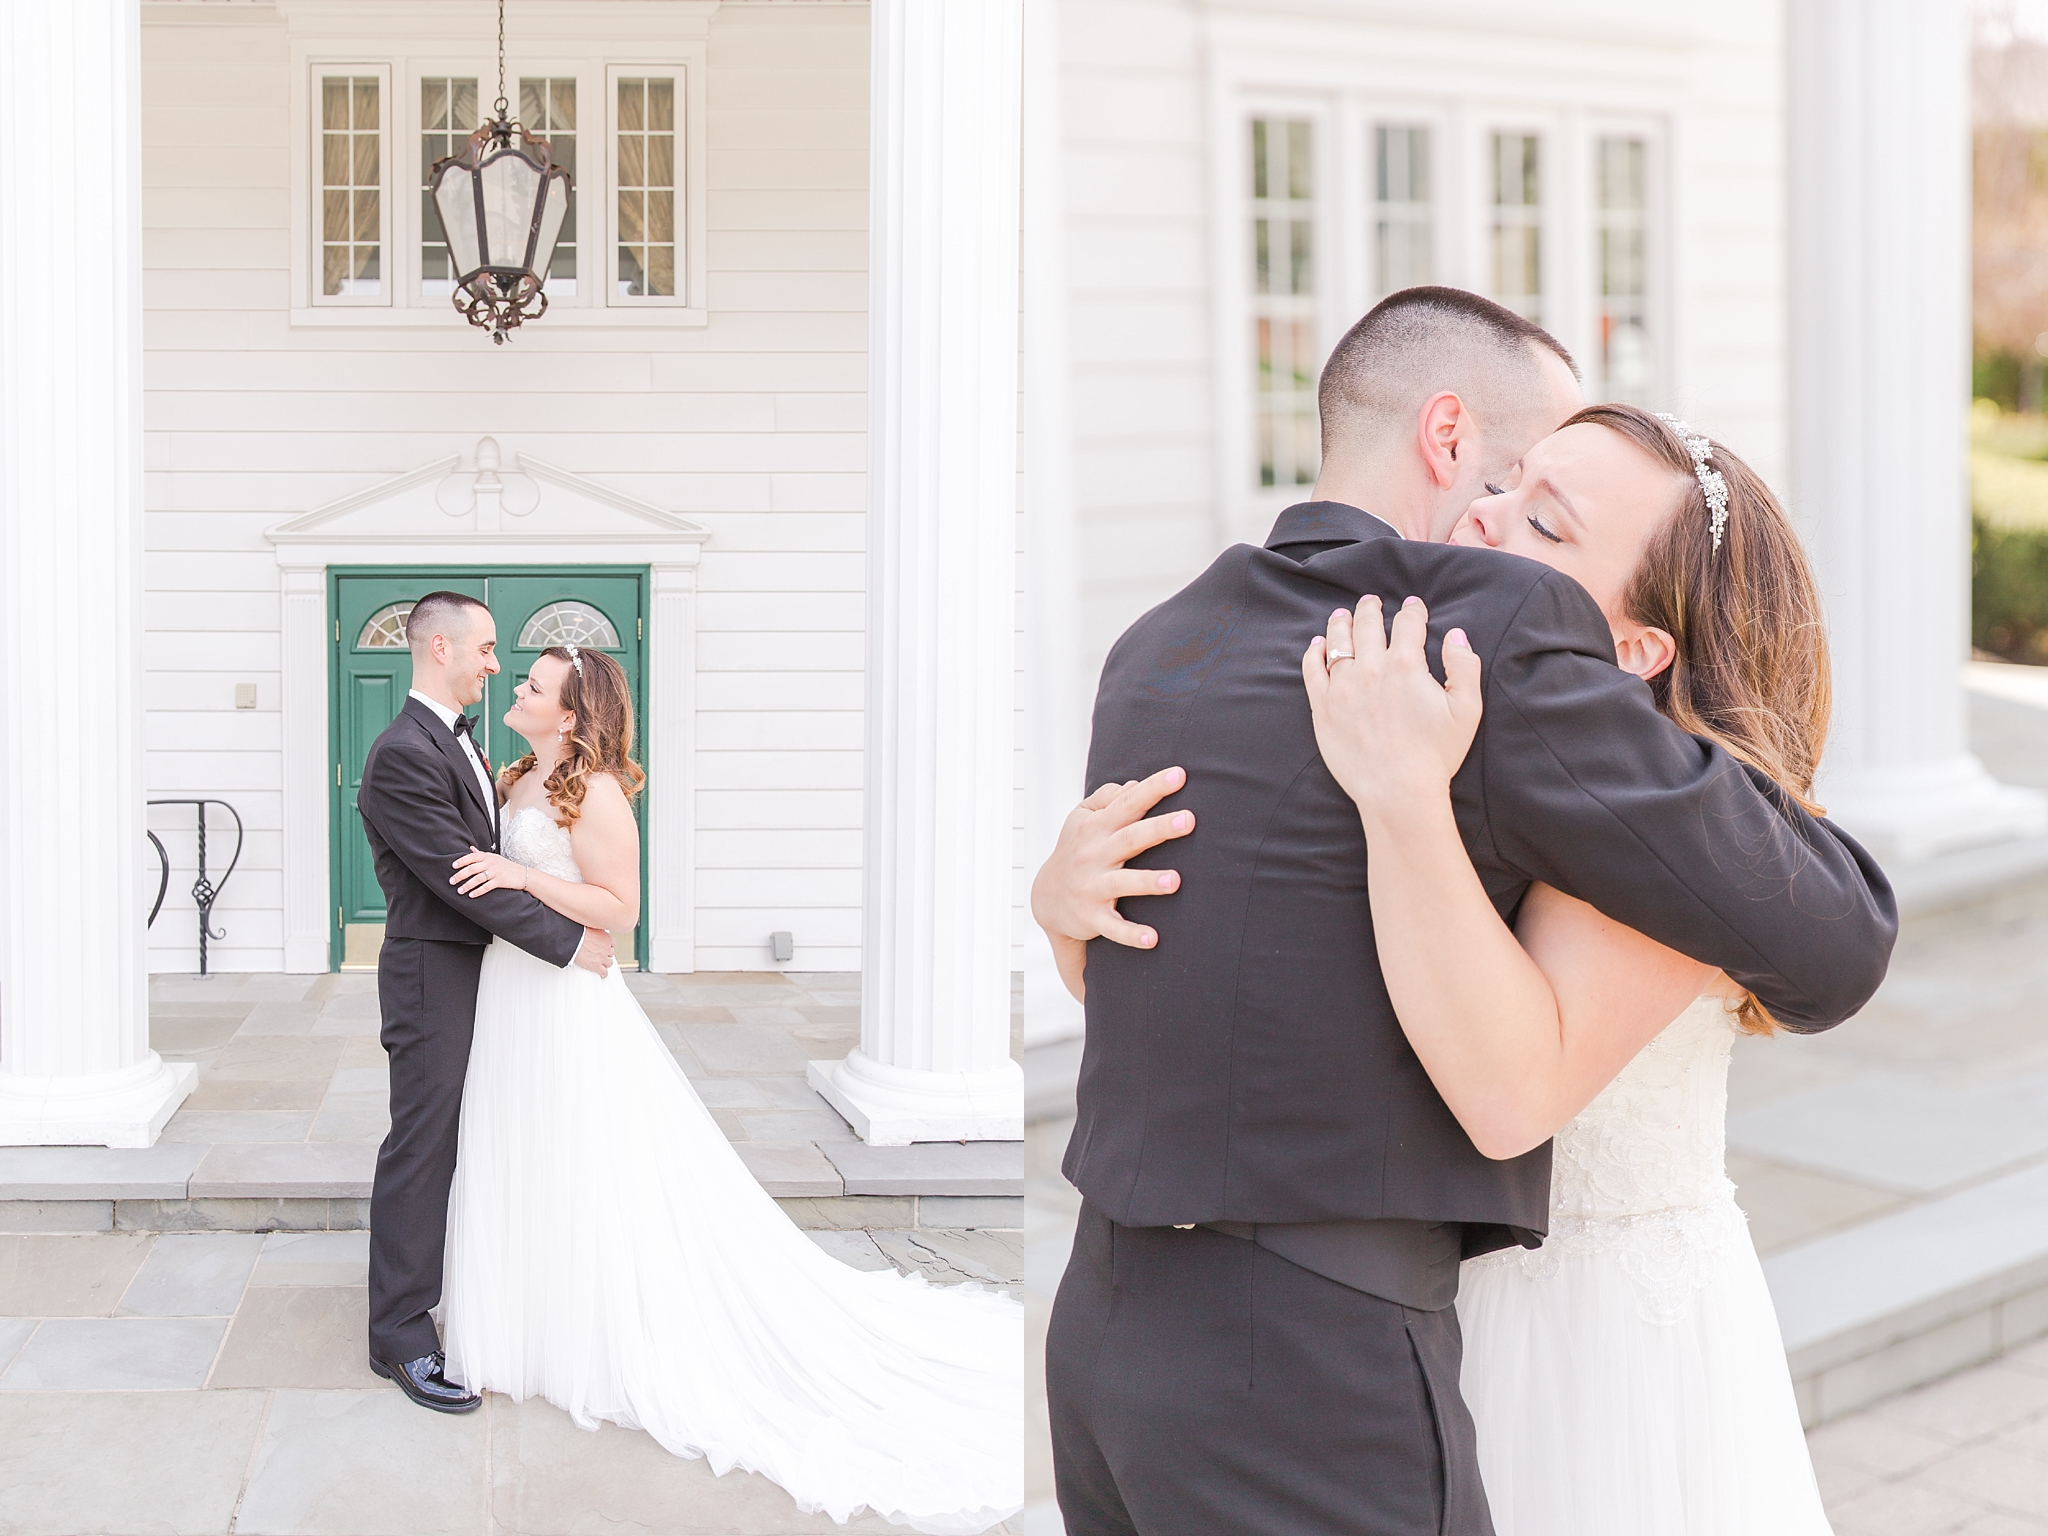 romantic-artful-candid-wedding-photos-in-st-clair-shores-at-the-white-house-wedding-chapel-by-courtney-carolyn-photography_0020.jpg